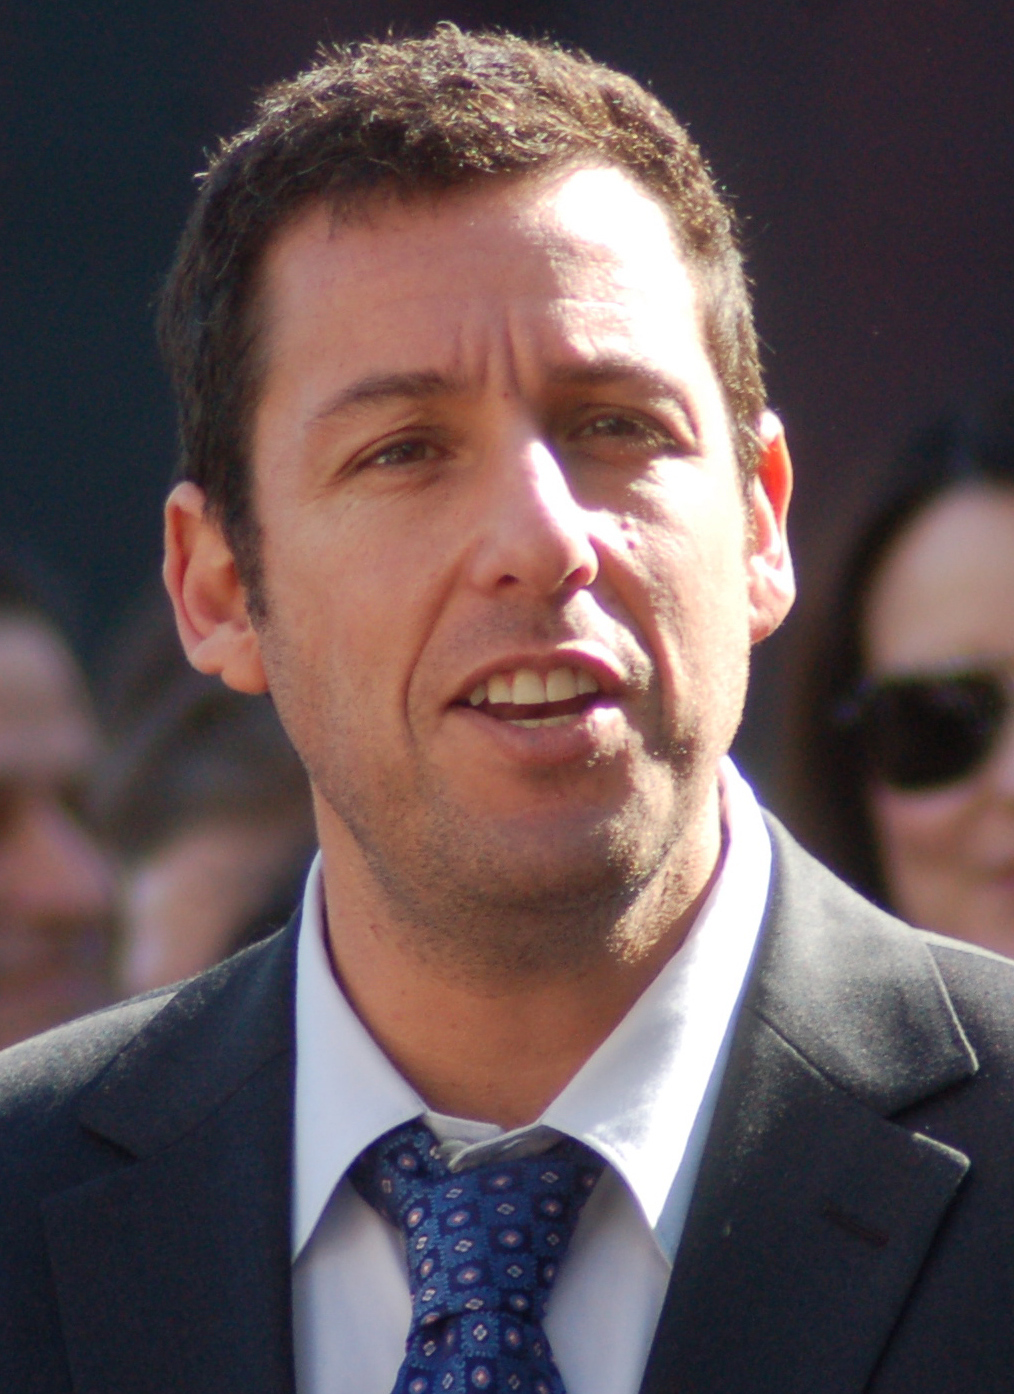 The 51-year old son of father Stanley Sandler and mother Judy Sandler Adam Sandler in 2018 photo. Adam Sandler earned a 20  million dollar salary - leaving the net worth at 320  million in 2018